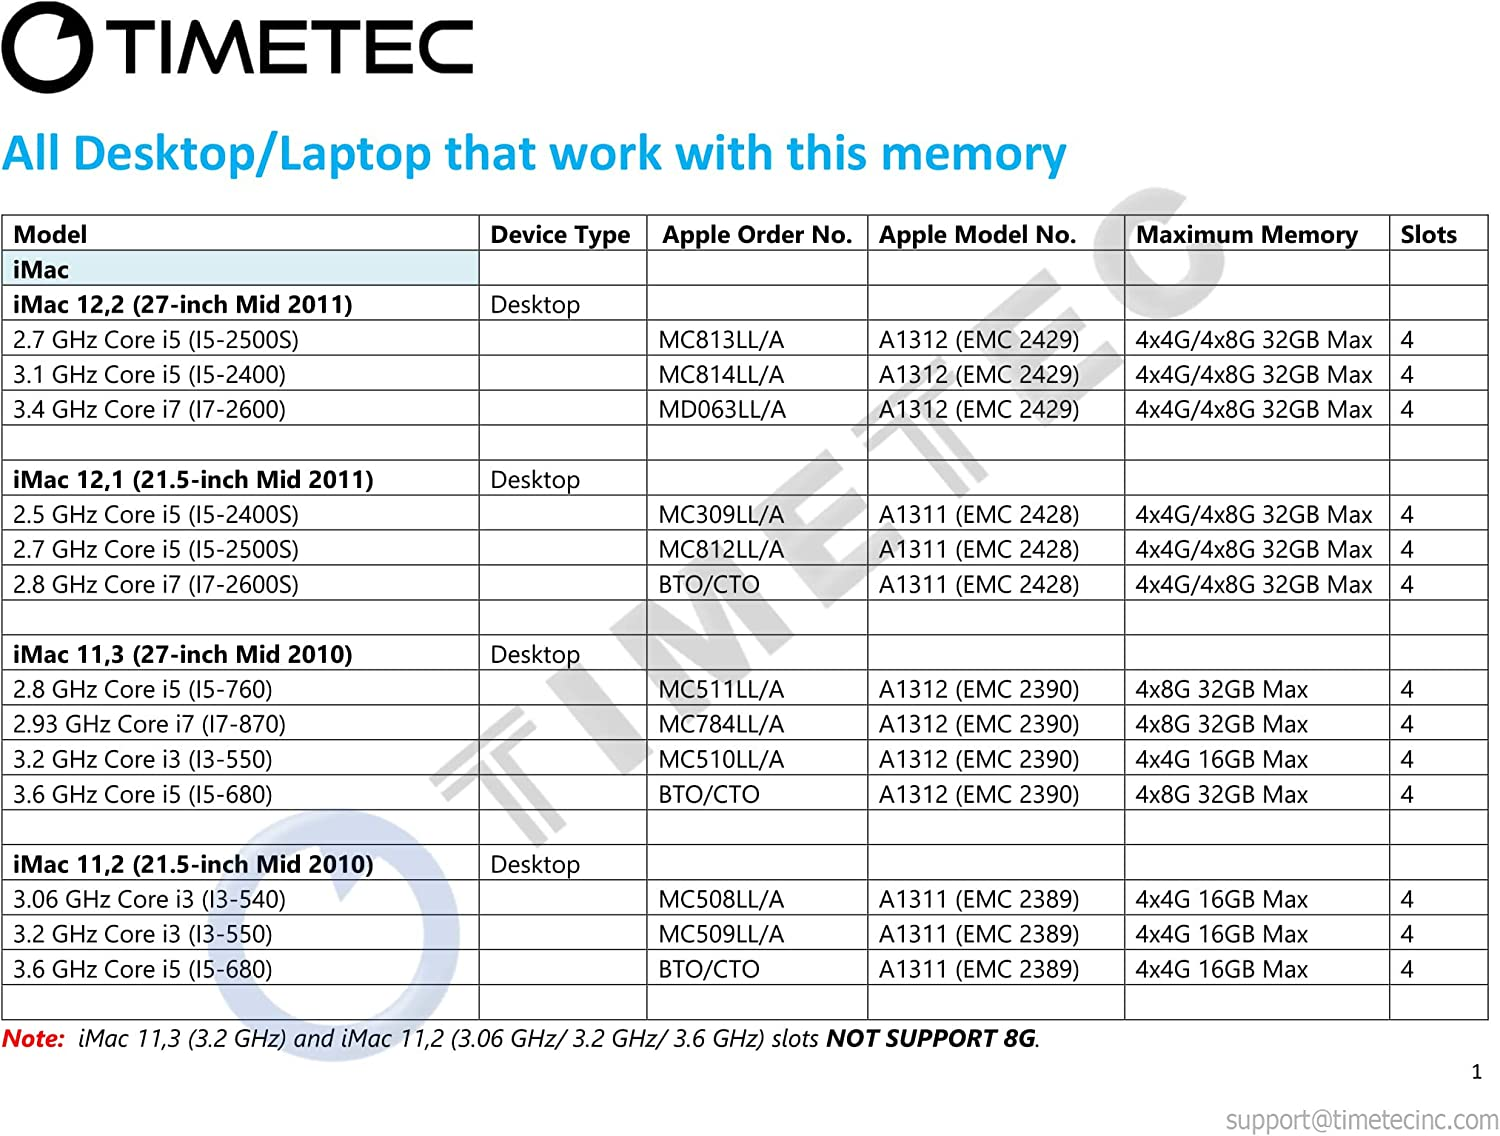 Timetec 16GB KIT(4x4GB) Compatible for Apple DDR3 1333MHz PC3-10600 CL9 for iMac (Mid 2010 27 inch, Mid 2011 21.5/27 inch) SODIMM Memory Module MAC RAM Upgrade for iMac 11,3 / iMac 12,1 / iMac 12, 2